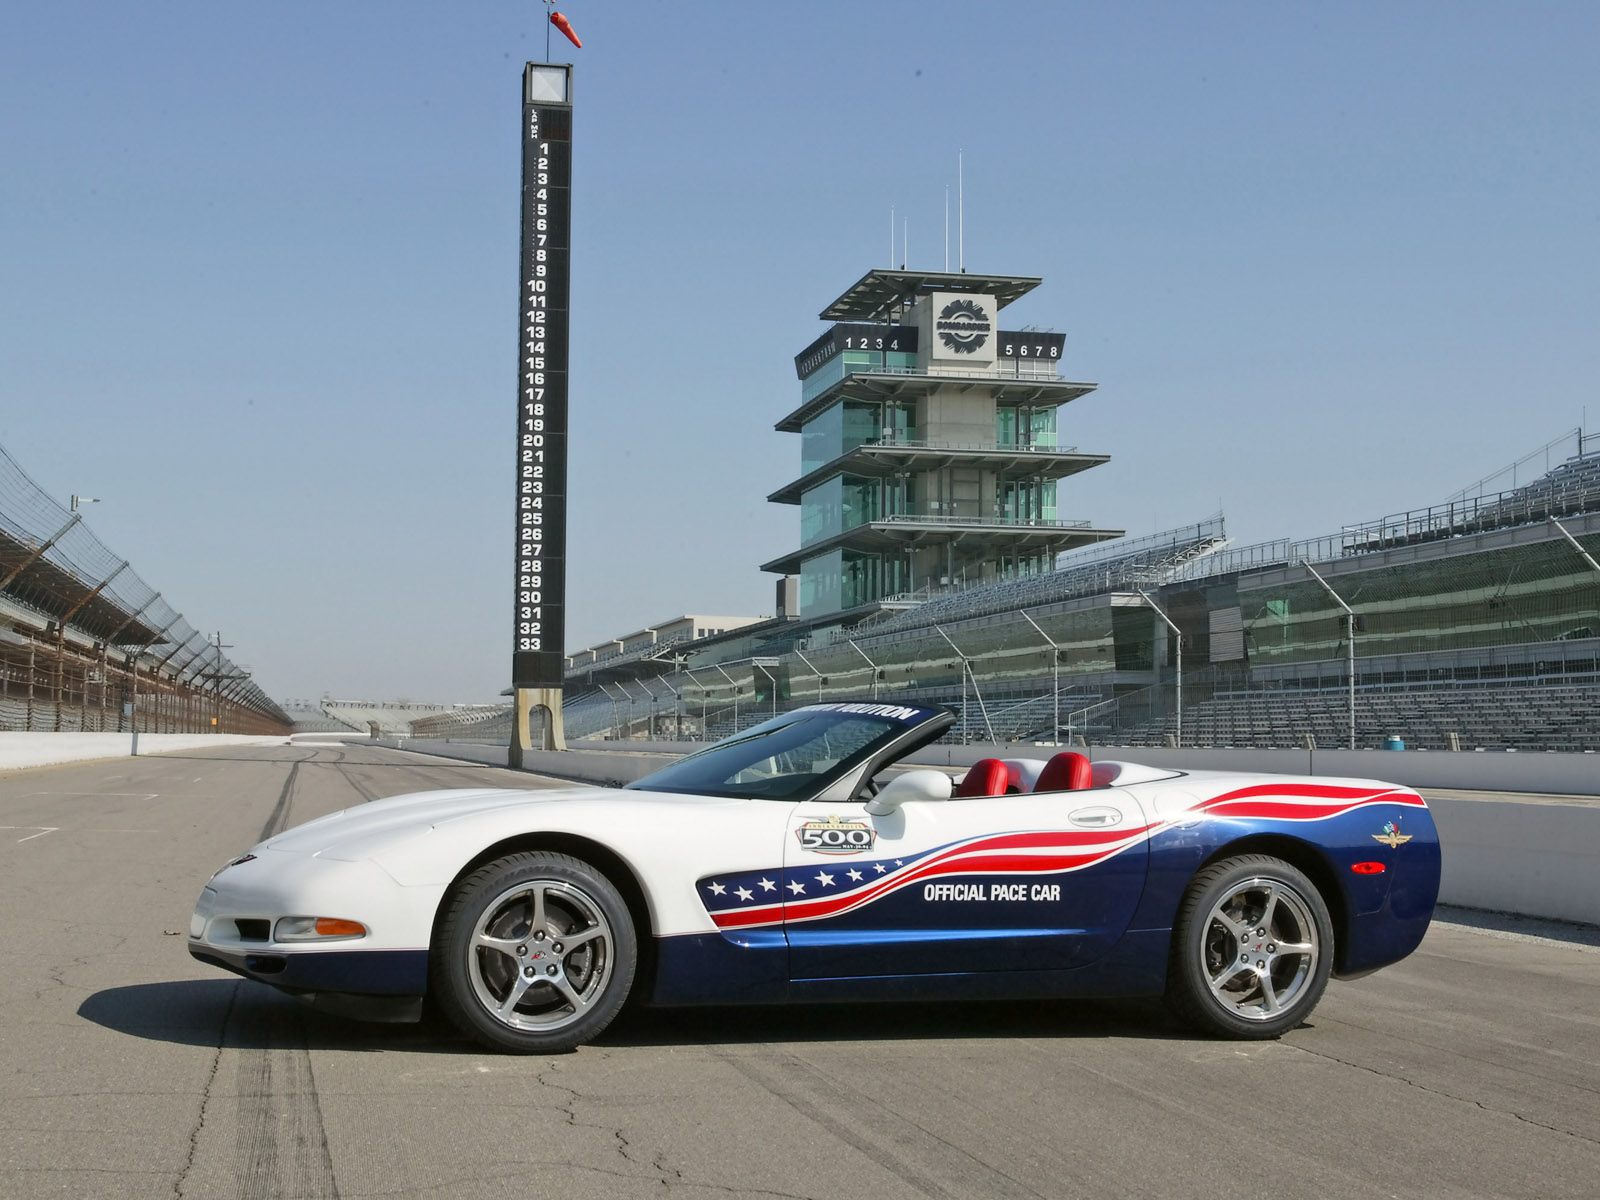 2004 Chevrolet Corvette Convertible Indianapolis 500 Pace Car 1600x1200